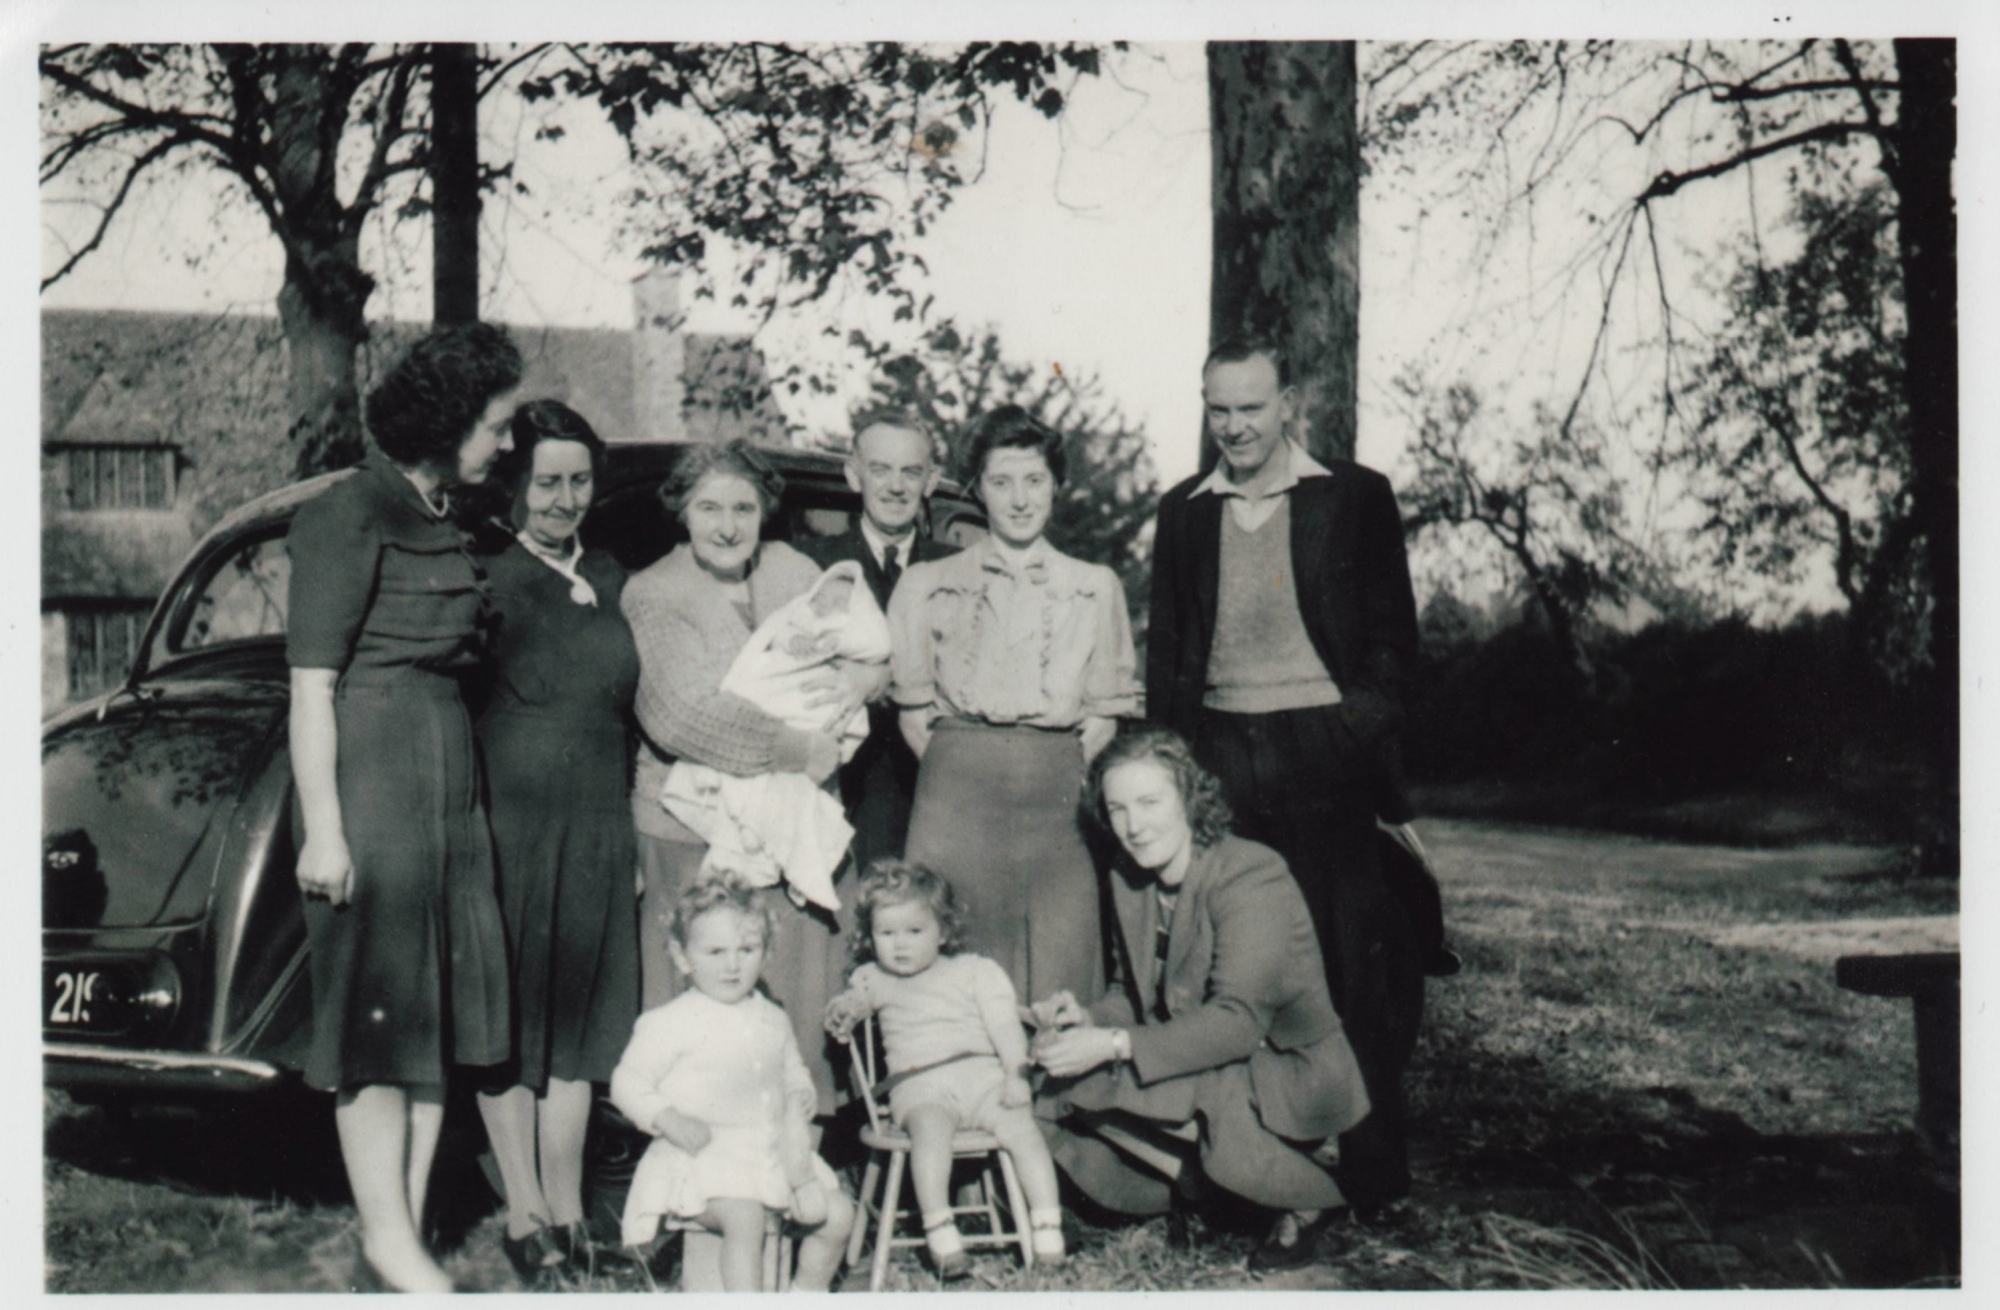 Brian Higgs family outside Memorial Hall, Shrivenham circa 1950